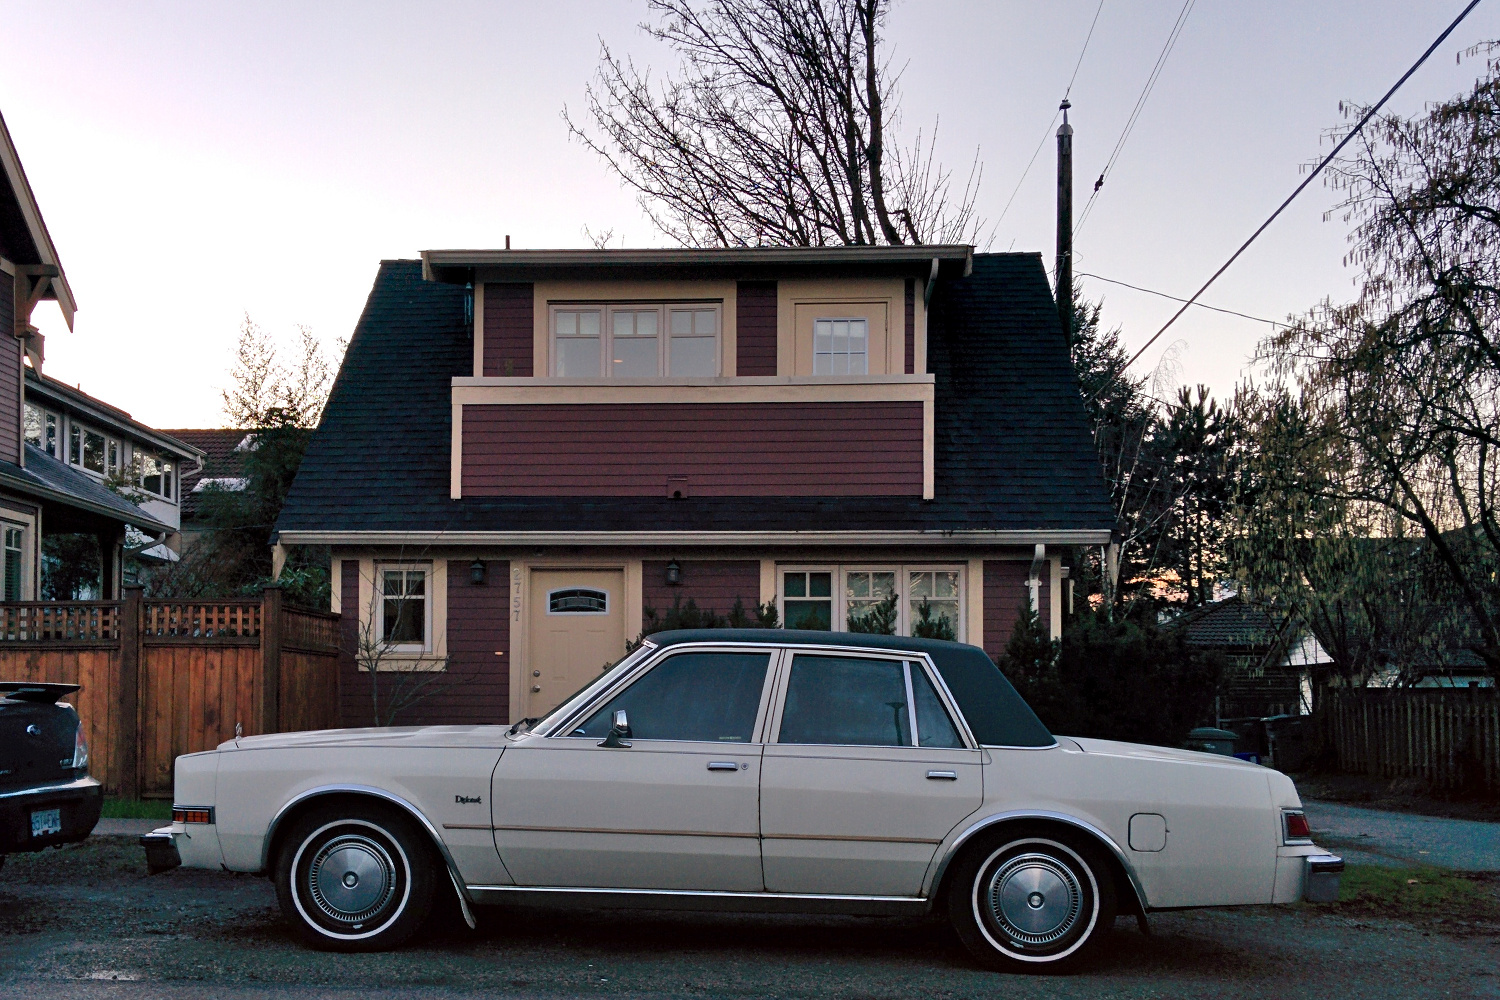 Old Parked Cars Vancouver 1986 Dodge Diplomat